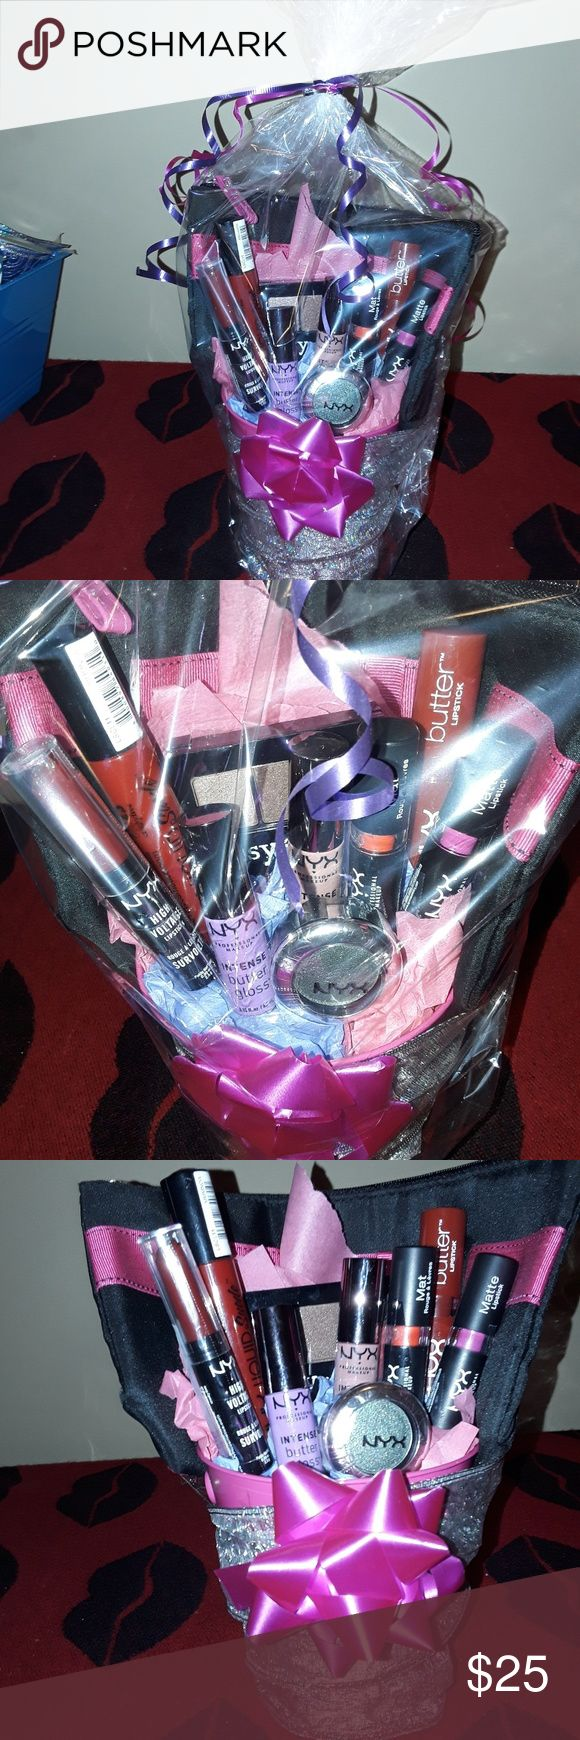 NEW Nyx cosmetic gift bucket ALL BRAND NEW NYX MAKEUP & A PINK SND BLACK MAKEUP BAG TO GO WITH, IT COMES WITH THE PINK BUCKET TOO. PERFECT FOR A GIFT IDEA!  Items you recieve.. 1 pink tin/bucket $1 1 pink and black makeup bag $6 1 ipsy nyx 3 color eyeshadow palette $7 1 single color nyx eyeshadow $5 2 nyx intense buttergloss $13 2 nyx matte lipstick $14 1 nyx high voltage lipstick $7 1 nyx butter lipstick $3.30 1 nyx liquid suede cream lipstick$7 Supplies used to make this $12 RETAIL $ 75…